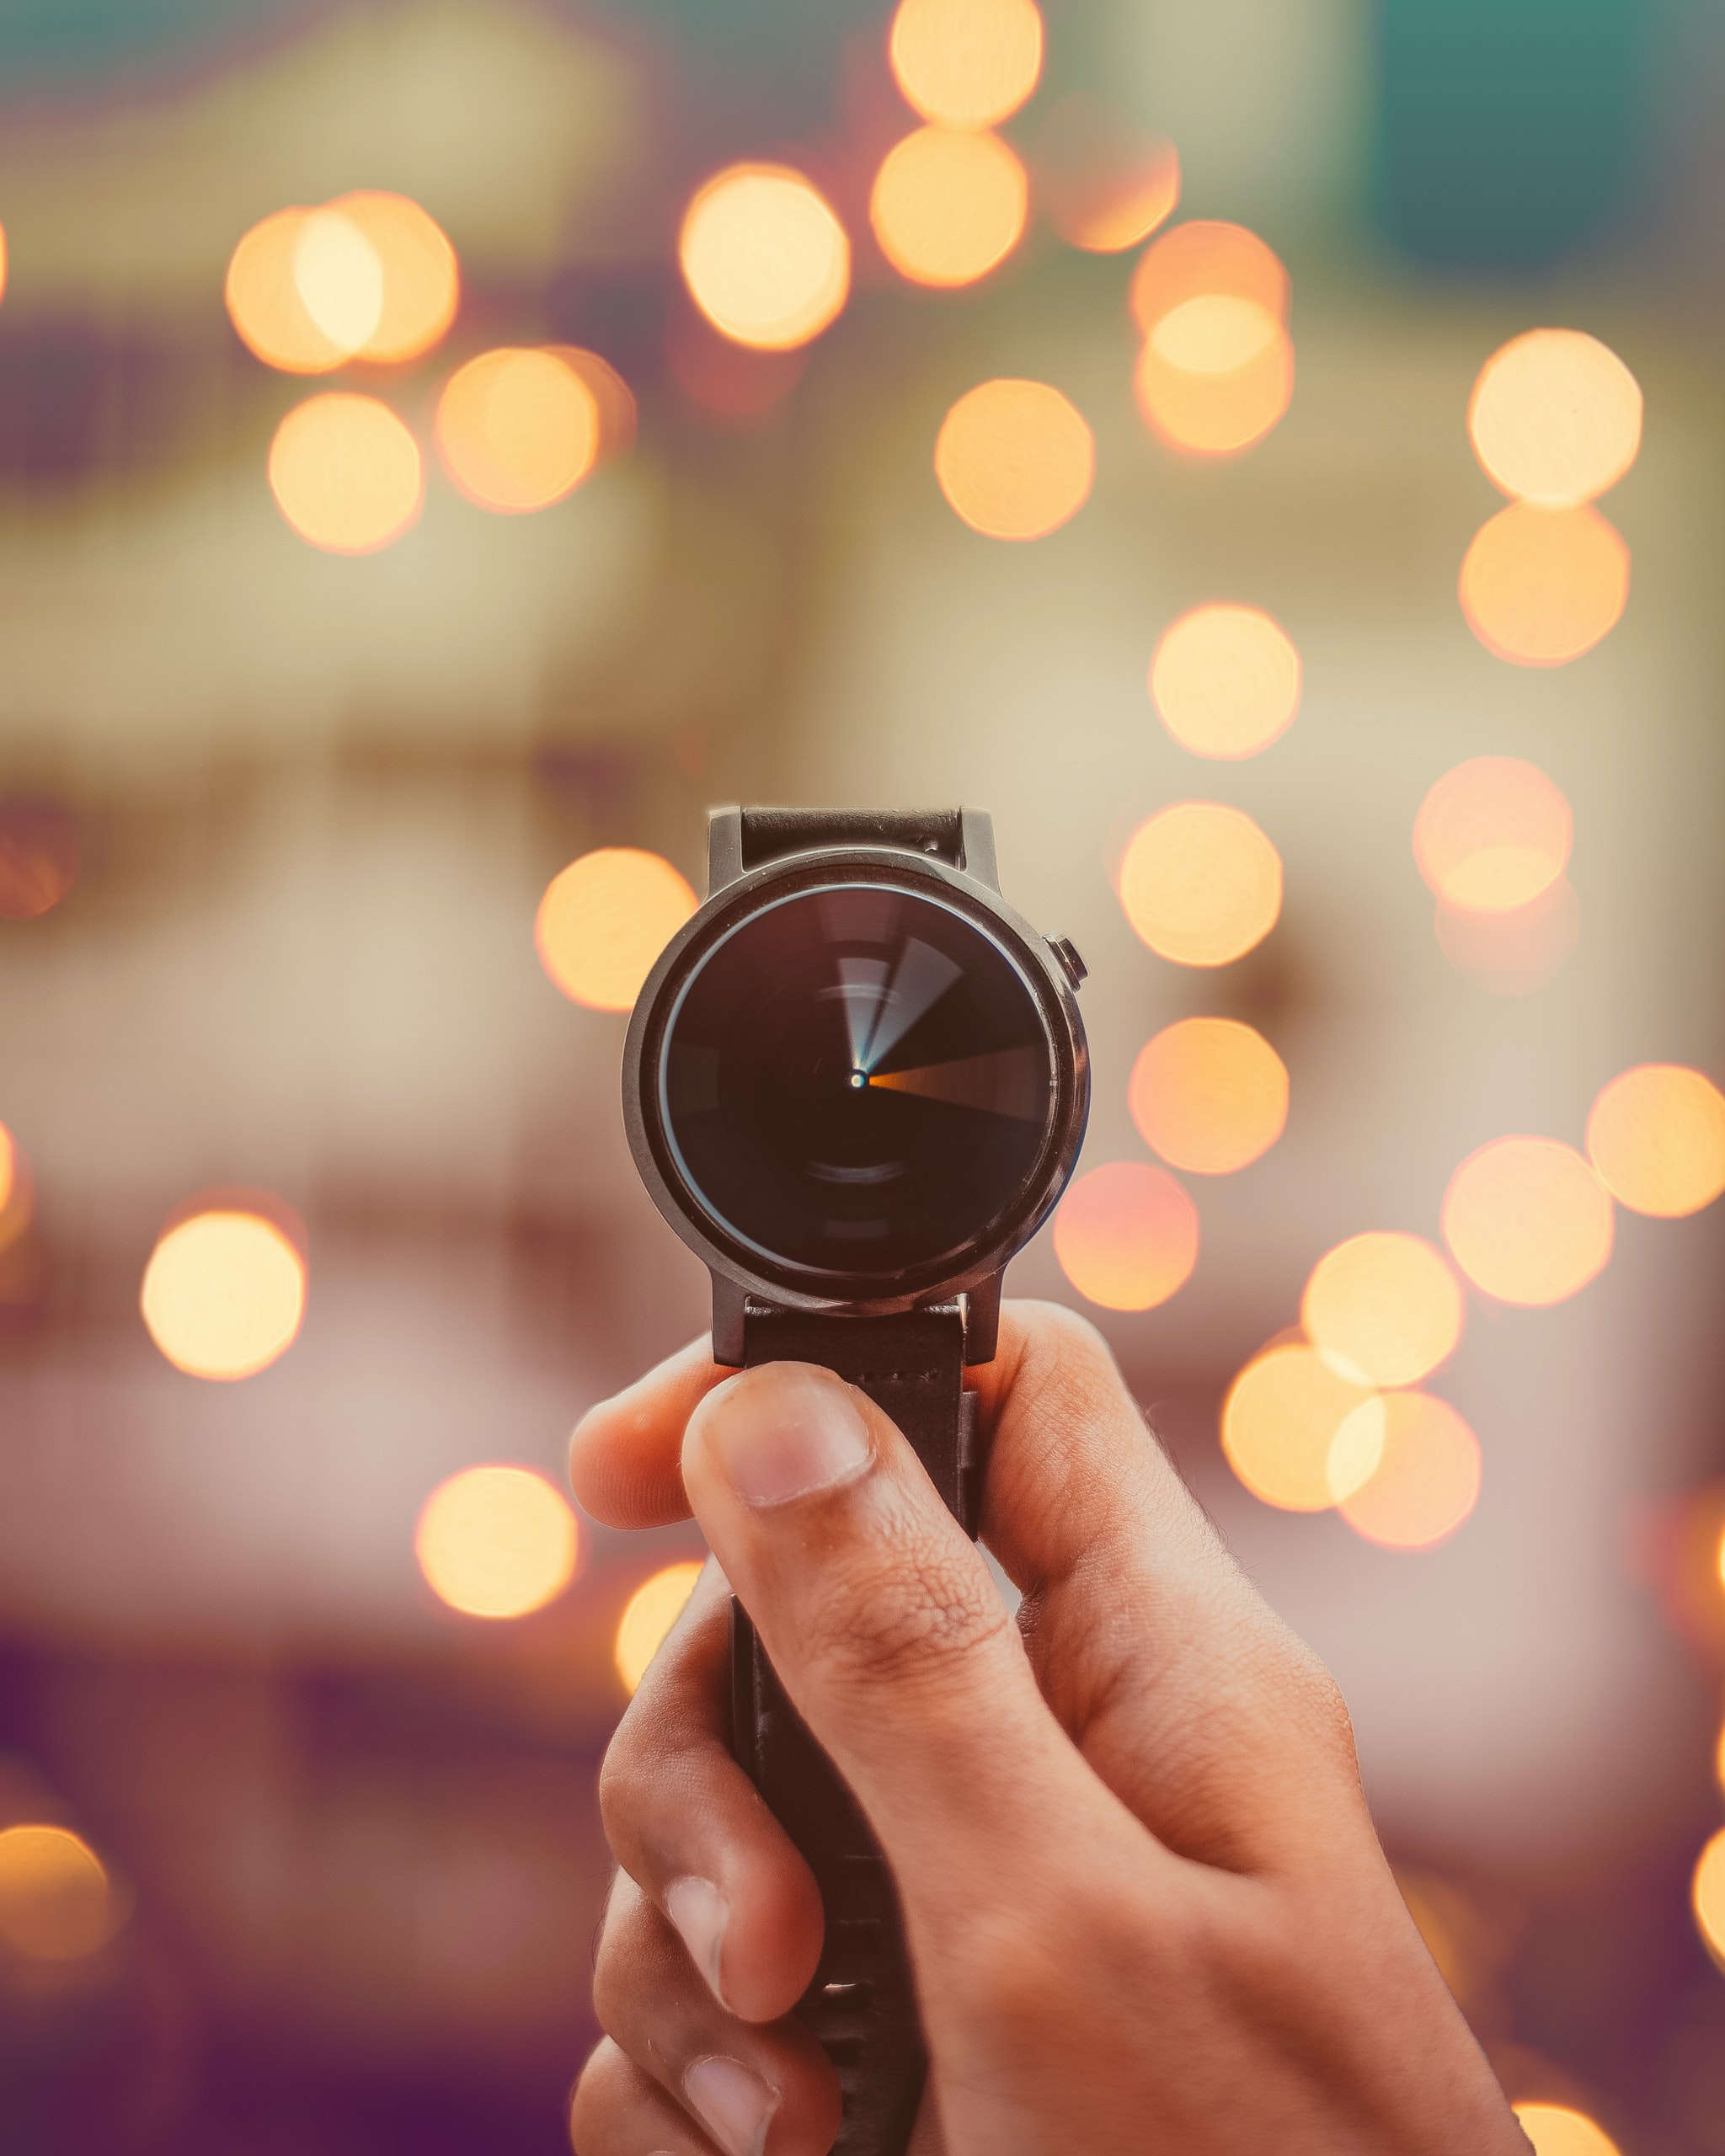 round silver-colored smartwatch bokeh photography